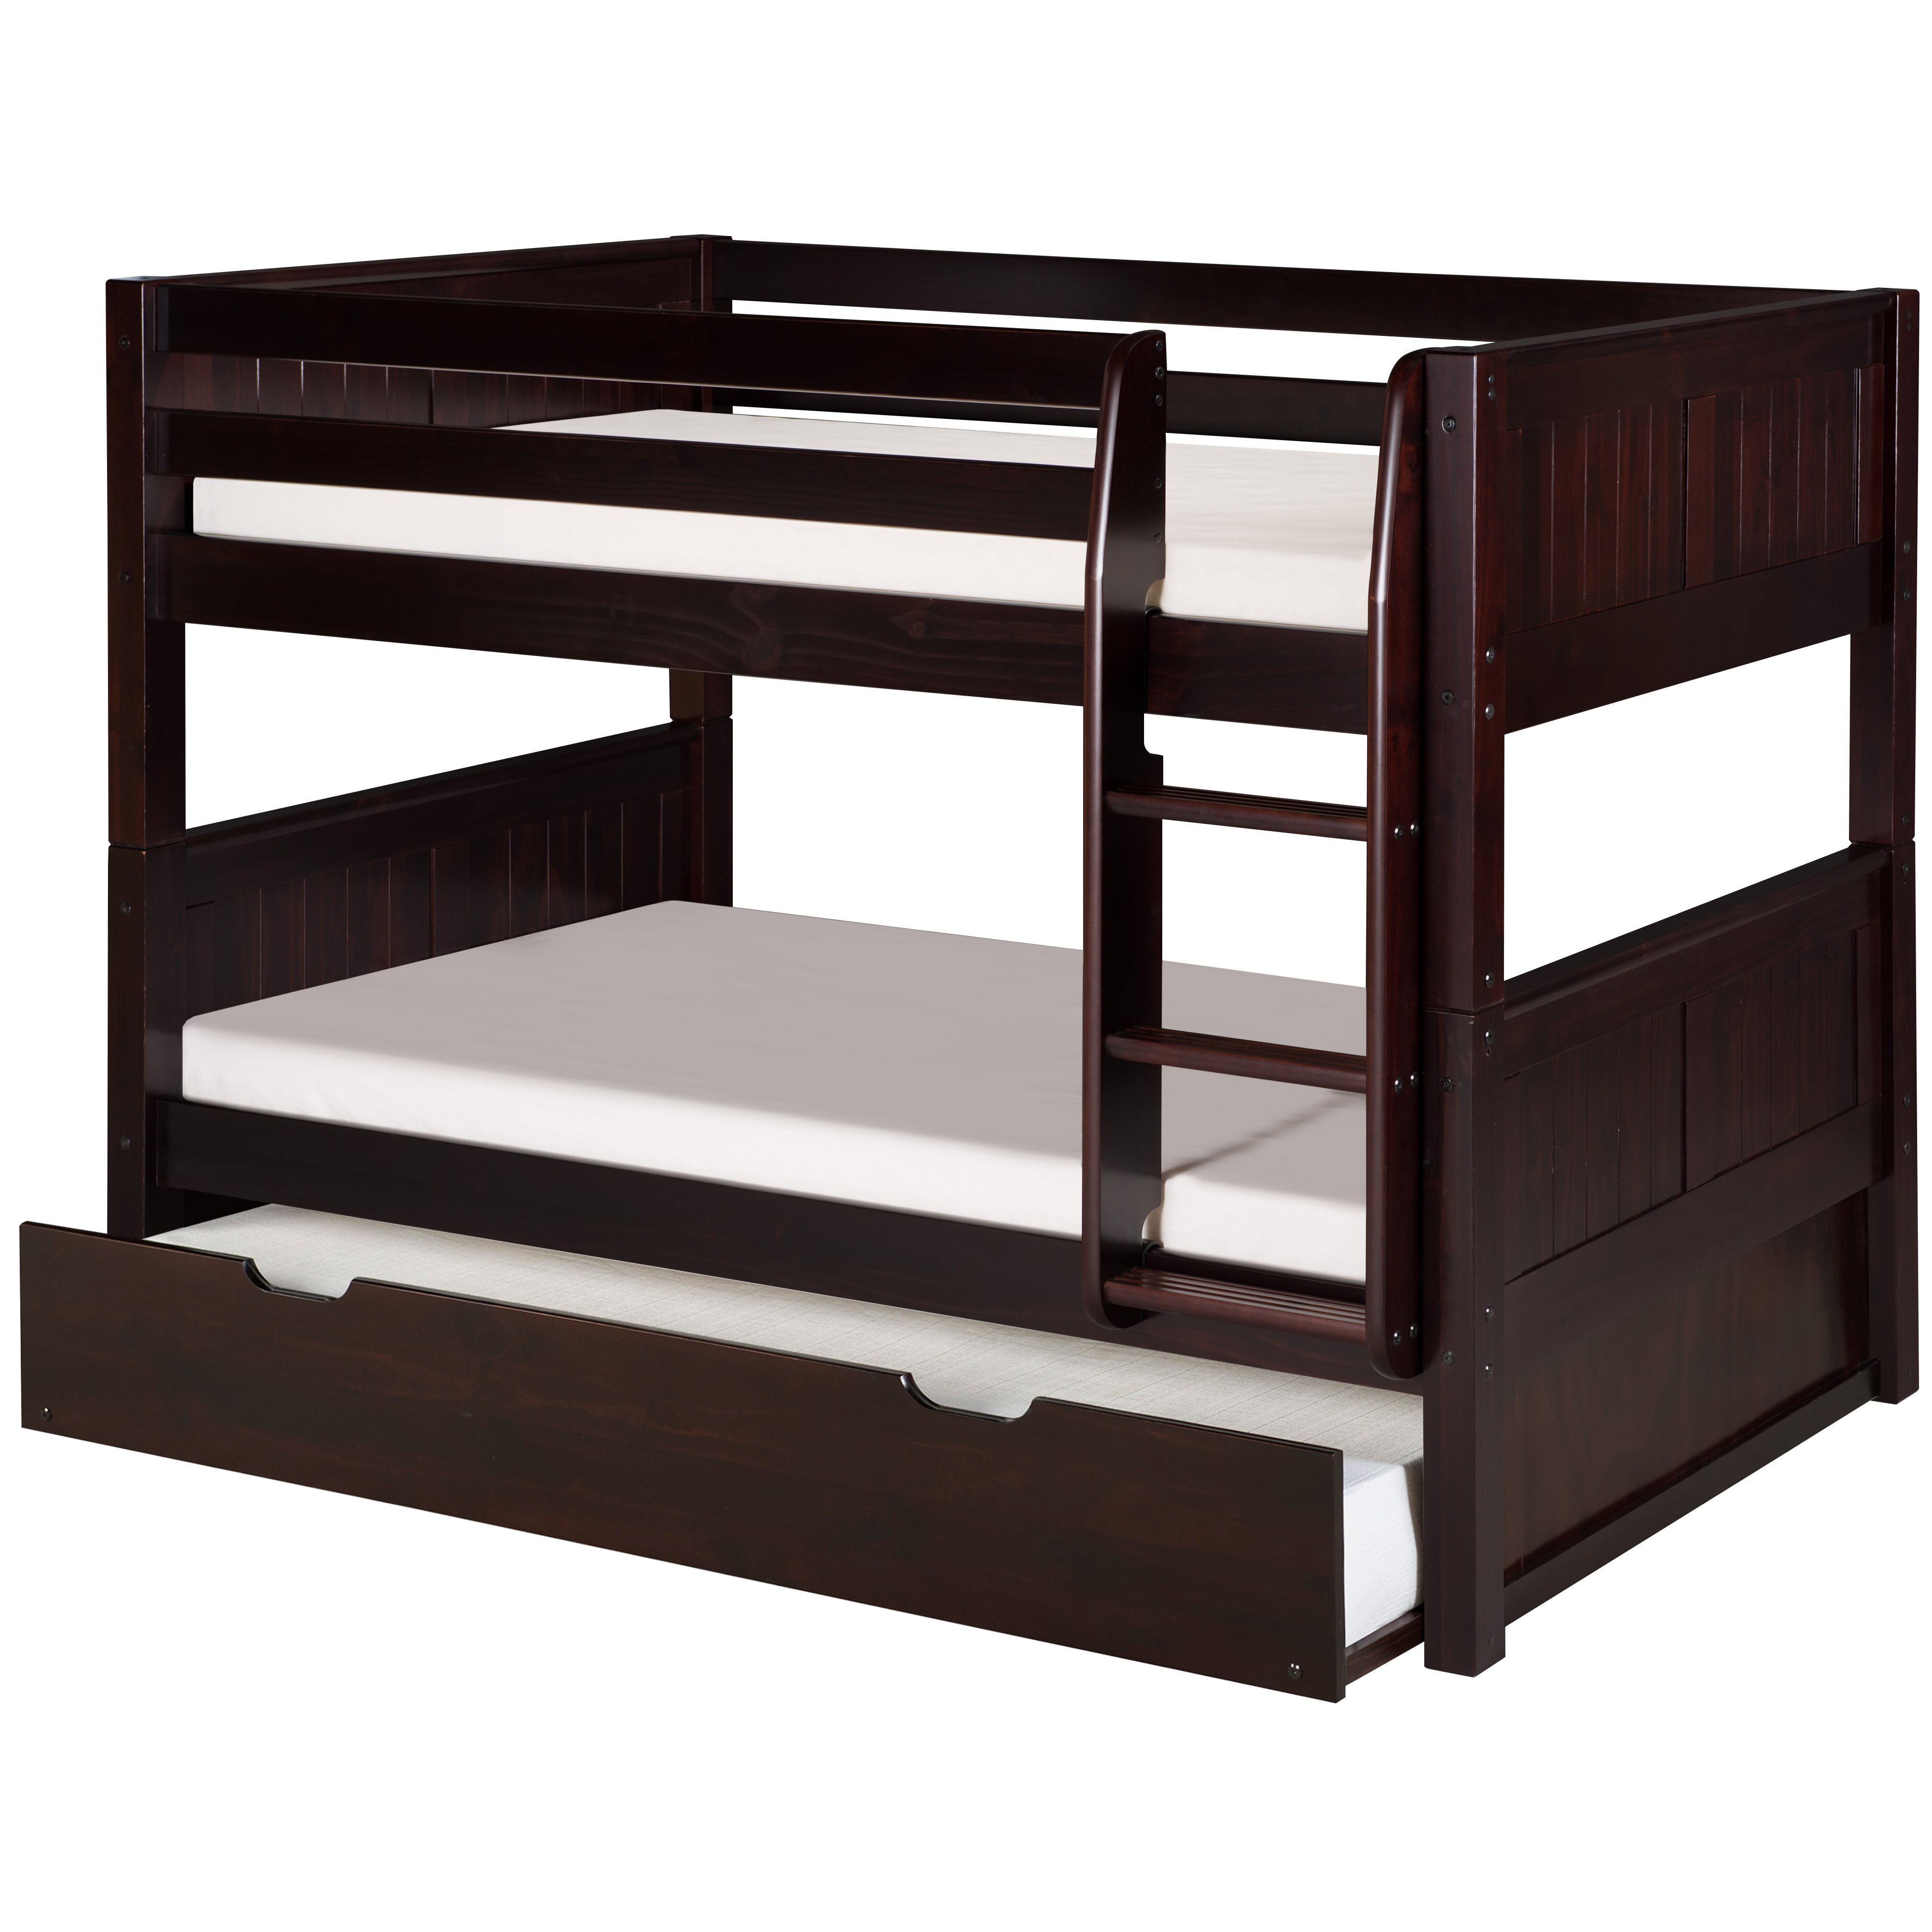 Camaflexi Camaflexi Low Twin Bunk Bed With Trundle